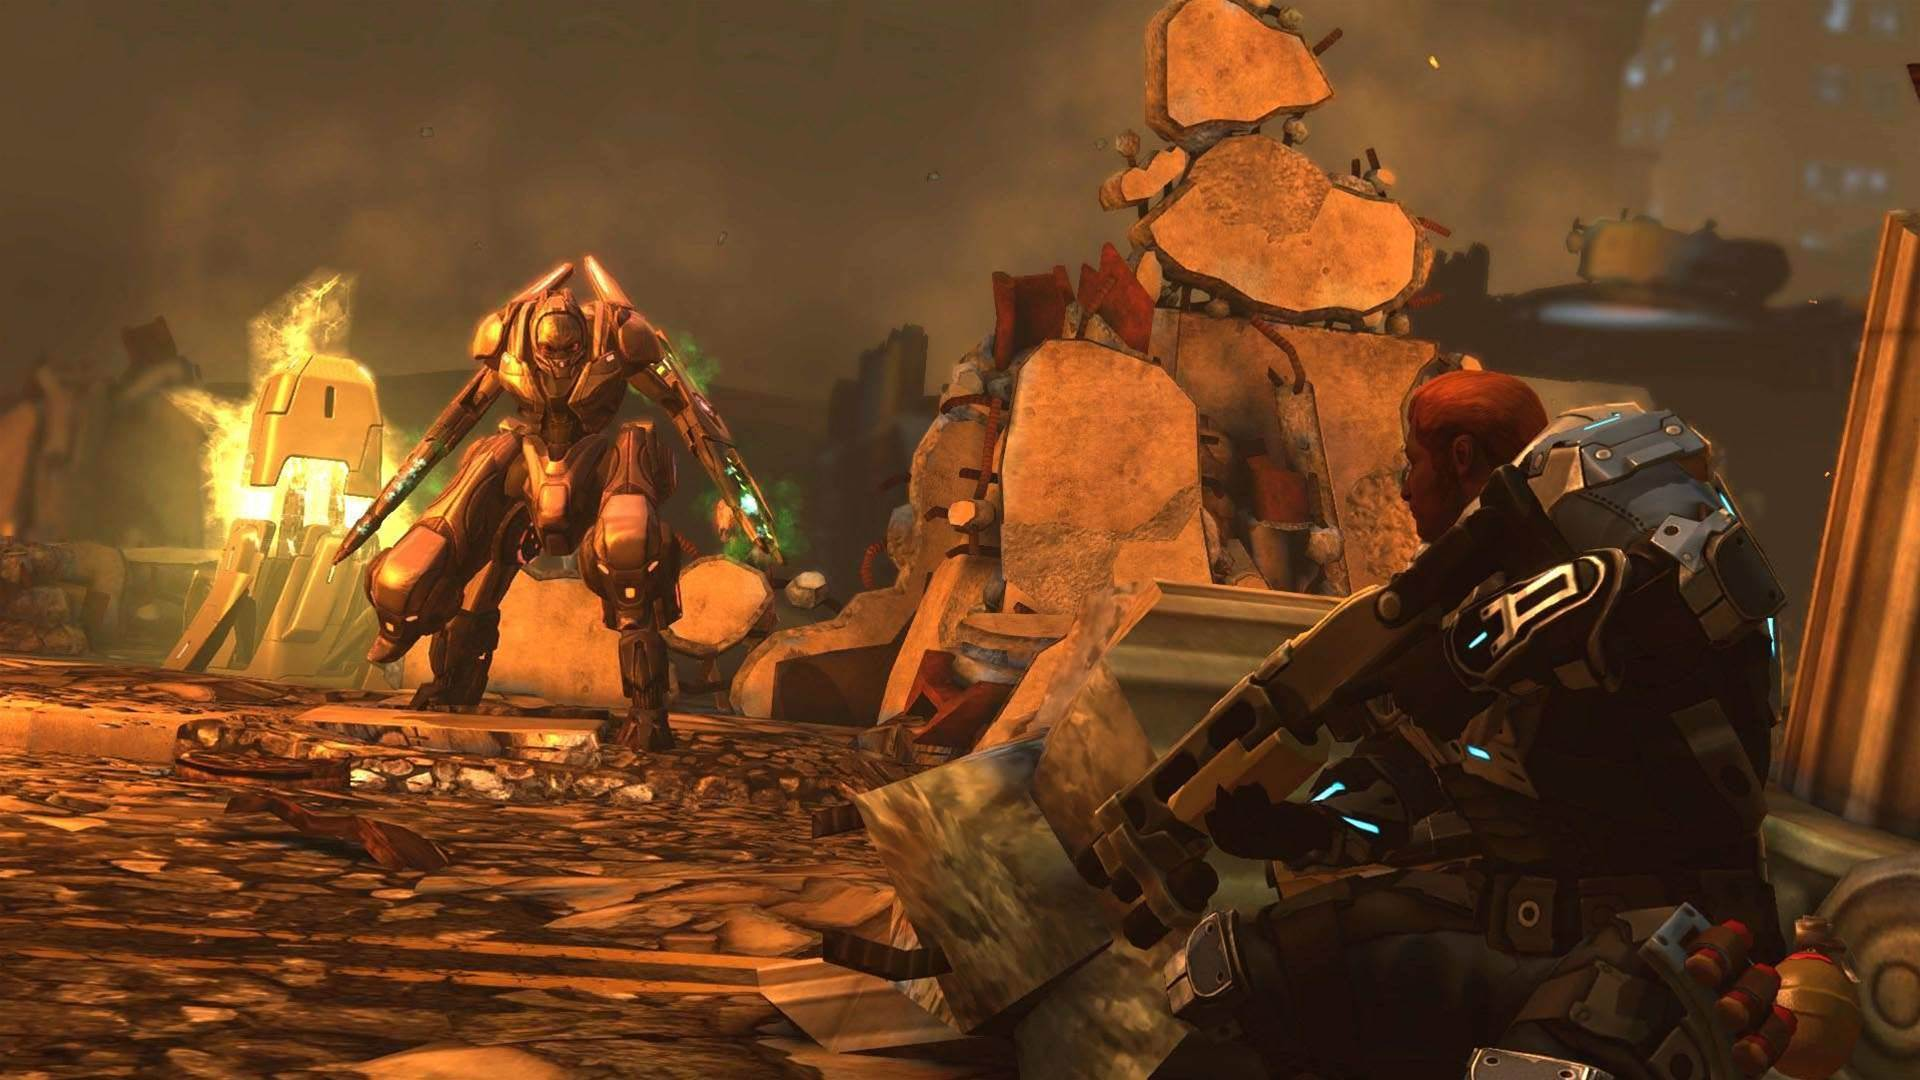 New screens from XCOM: Enemy Within